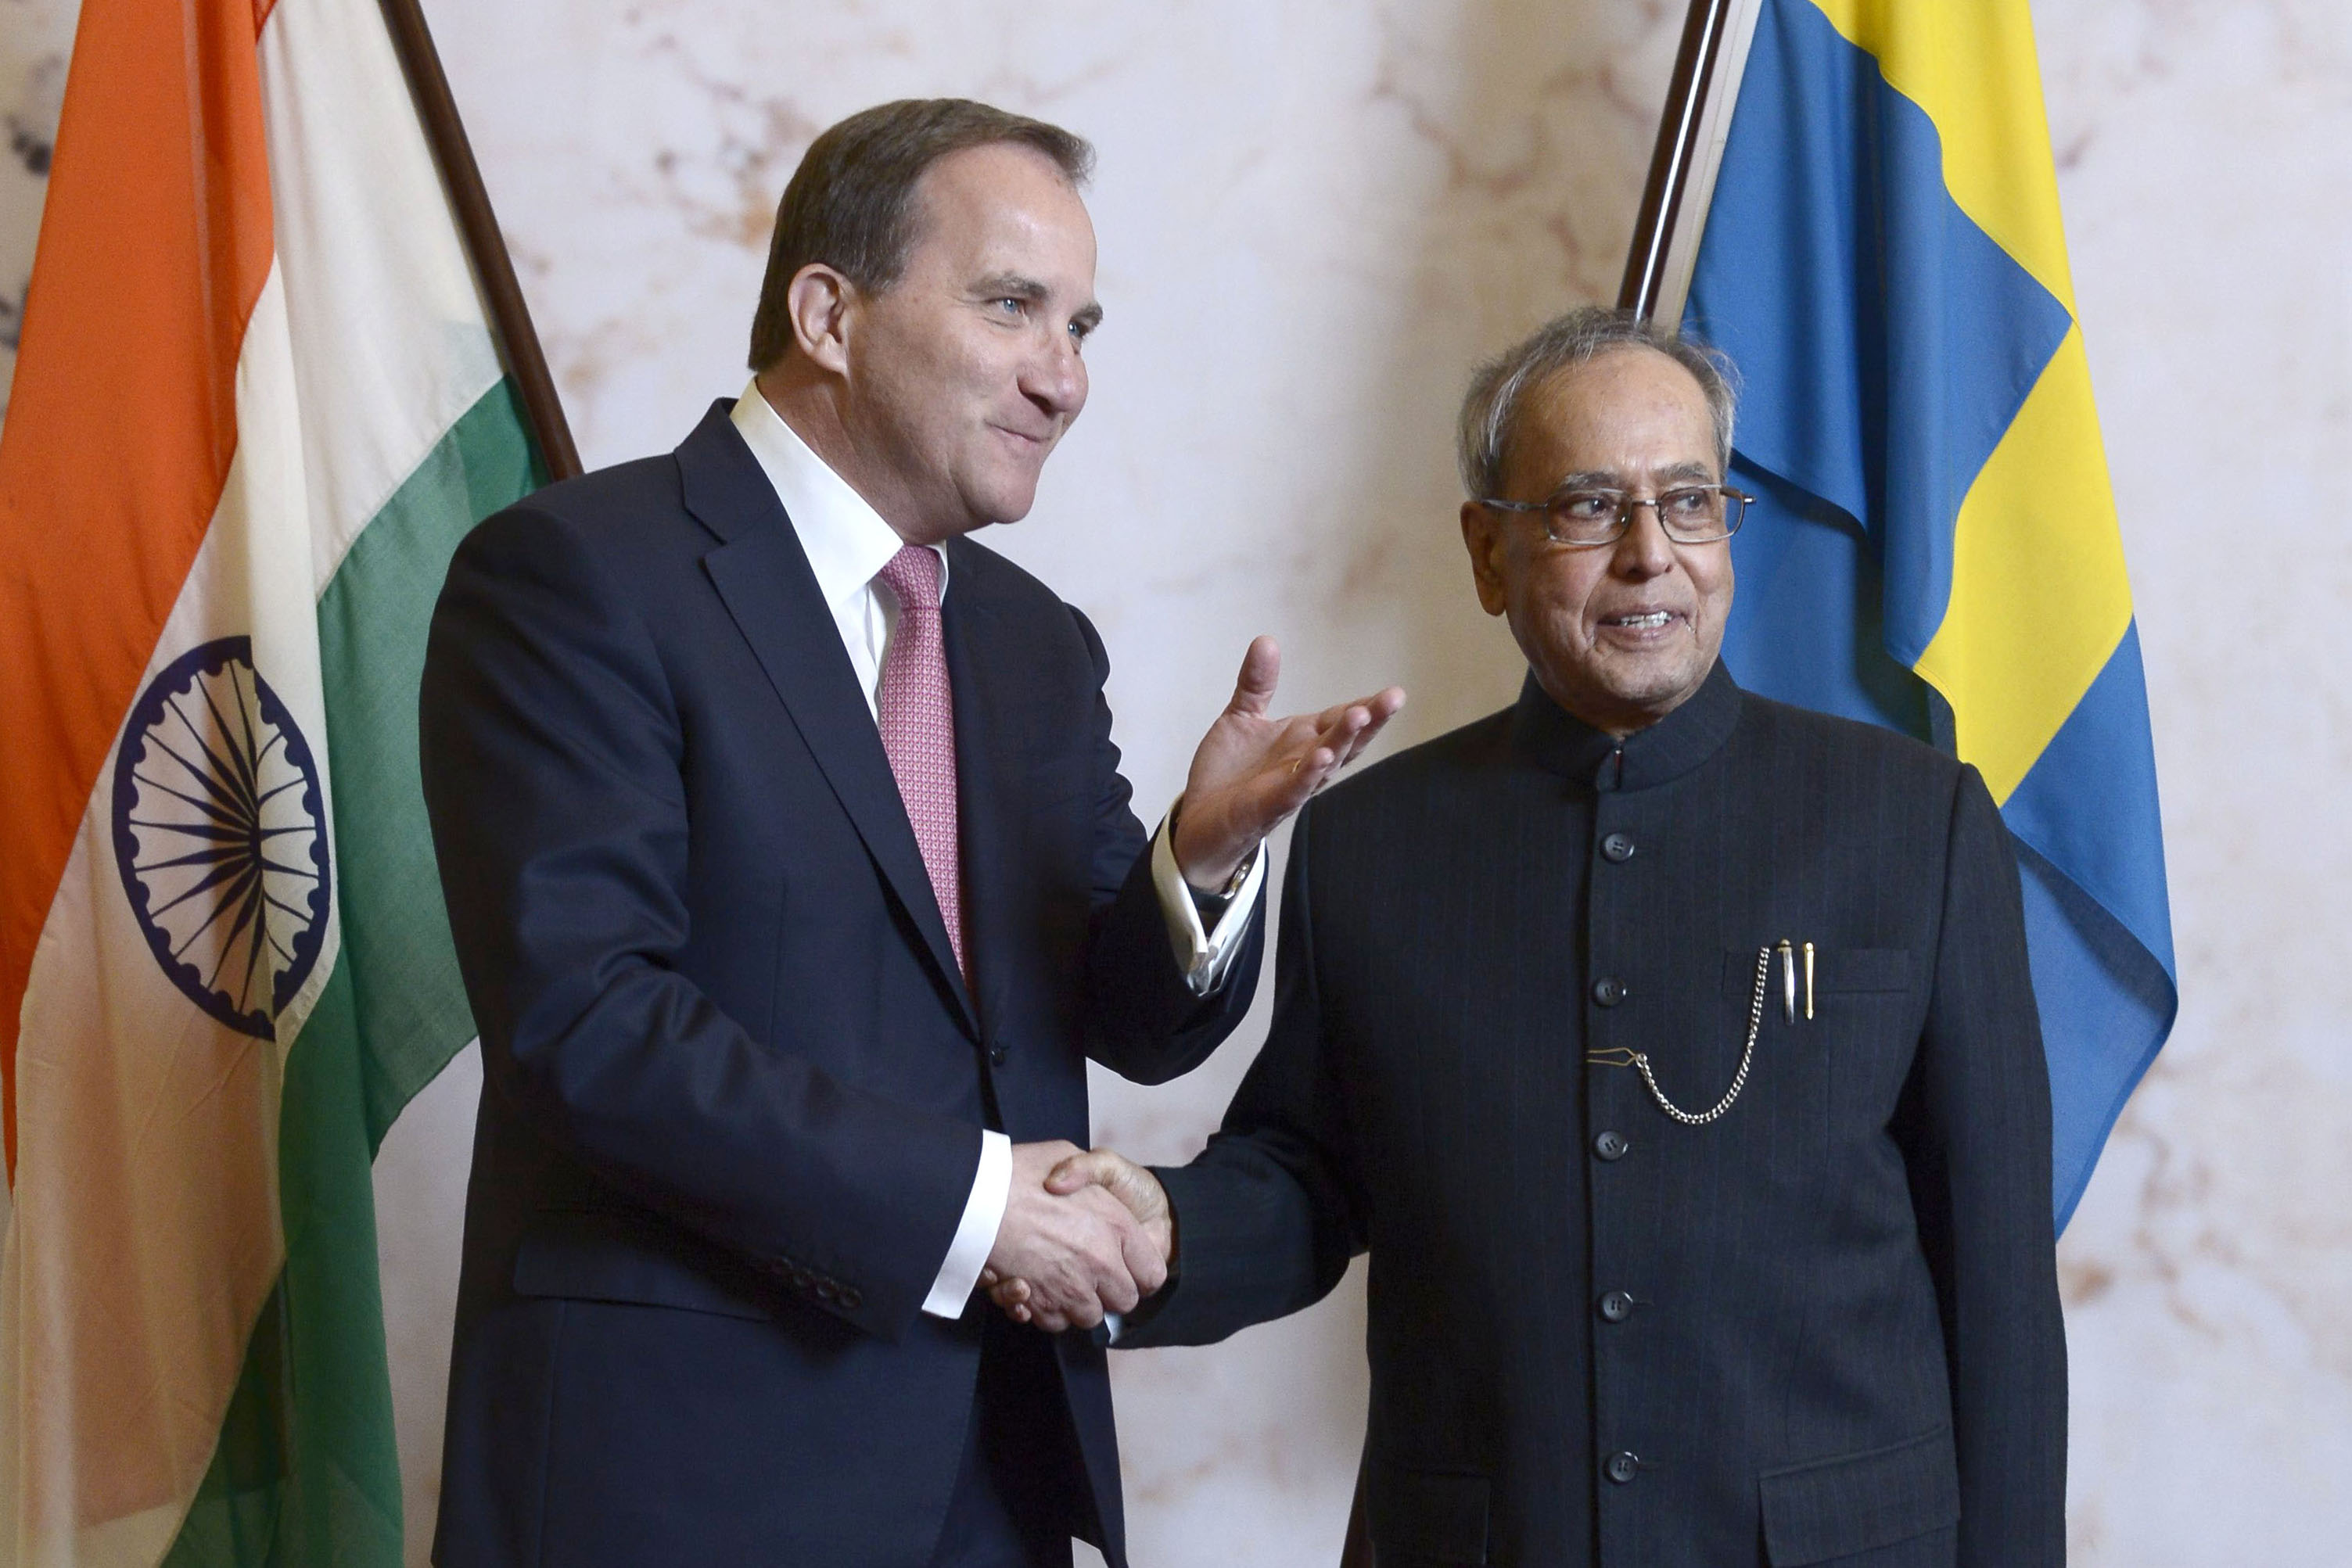 President announces e-tourist visas for Swedish nationals